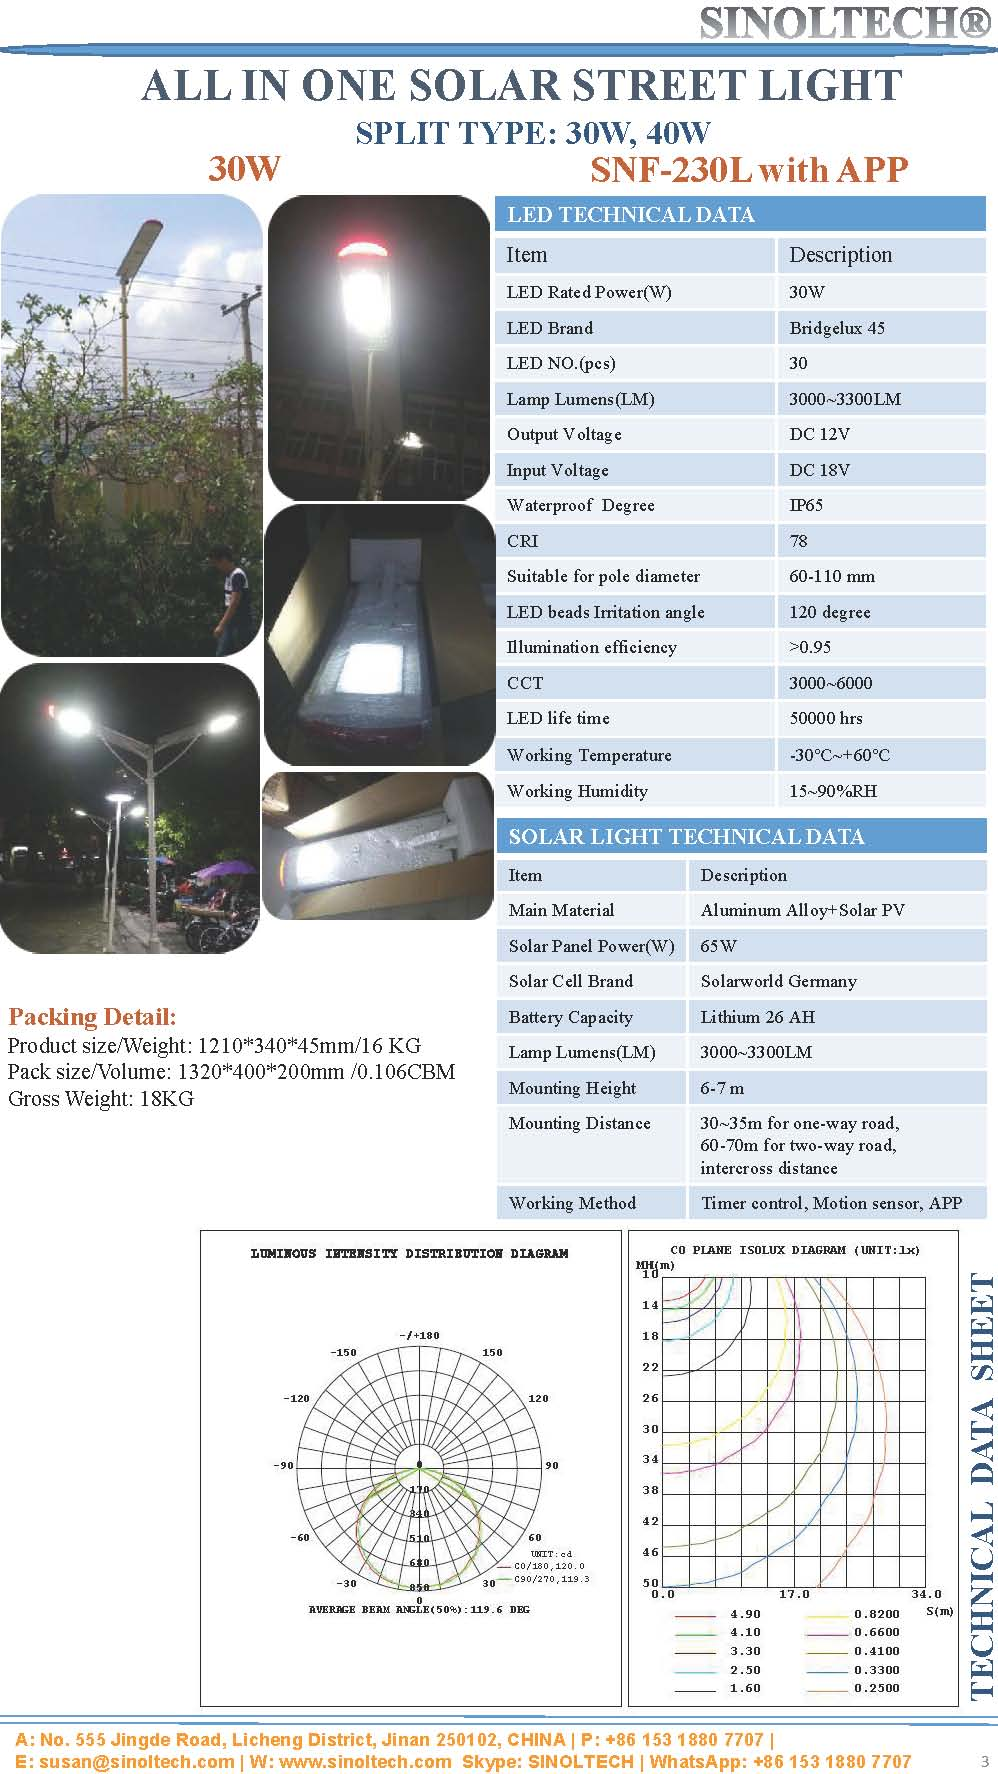 all in one solar street light 30W